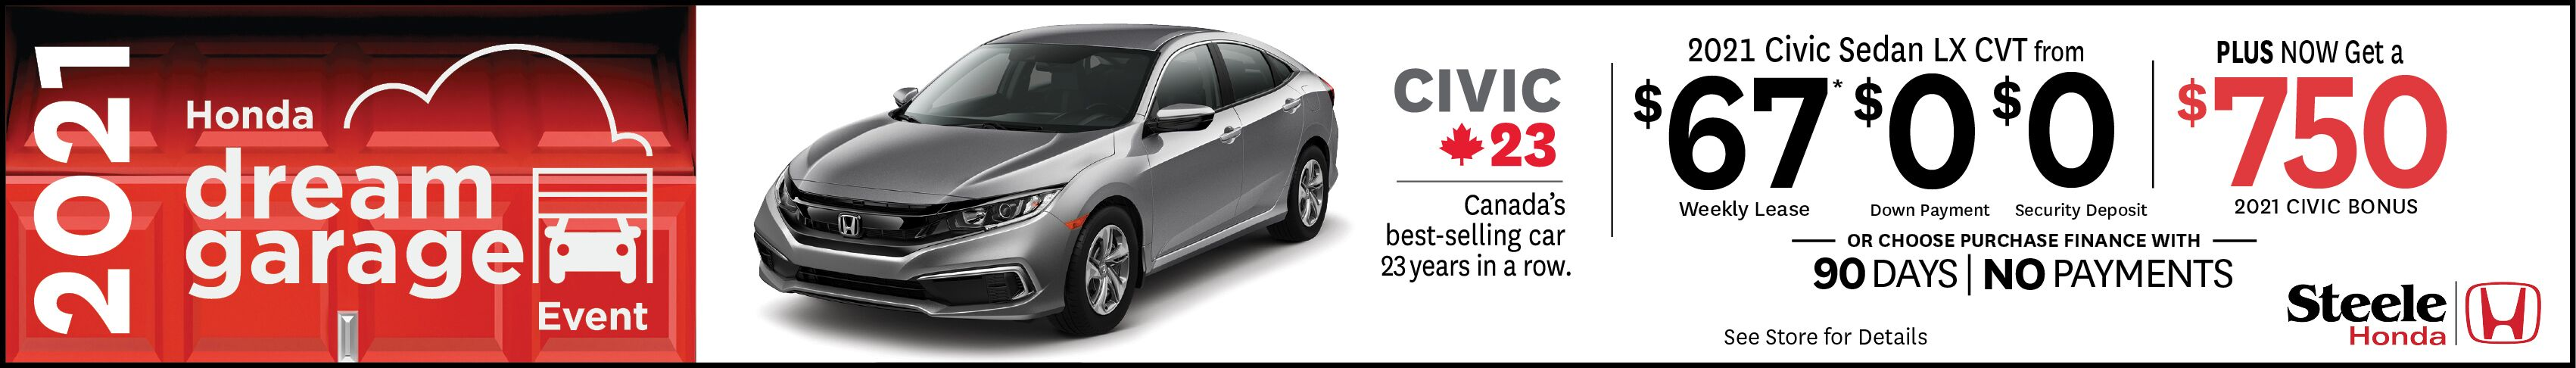 Civic February offer